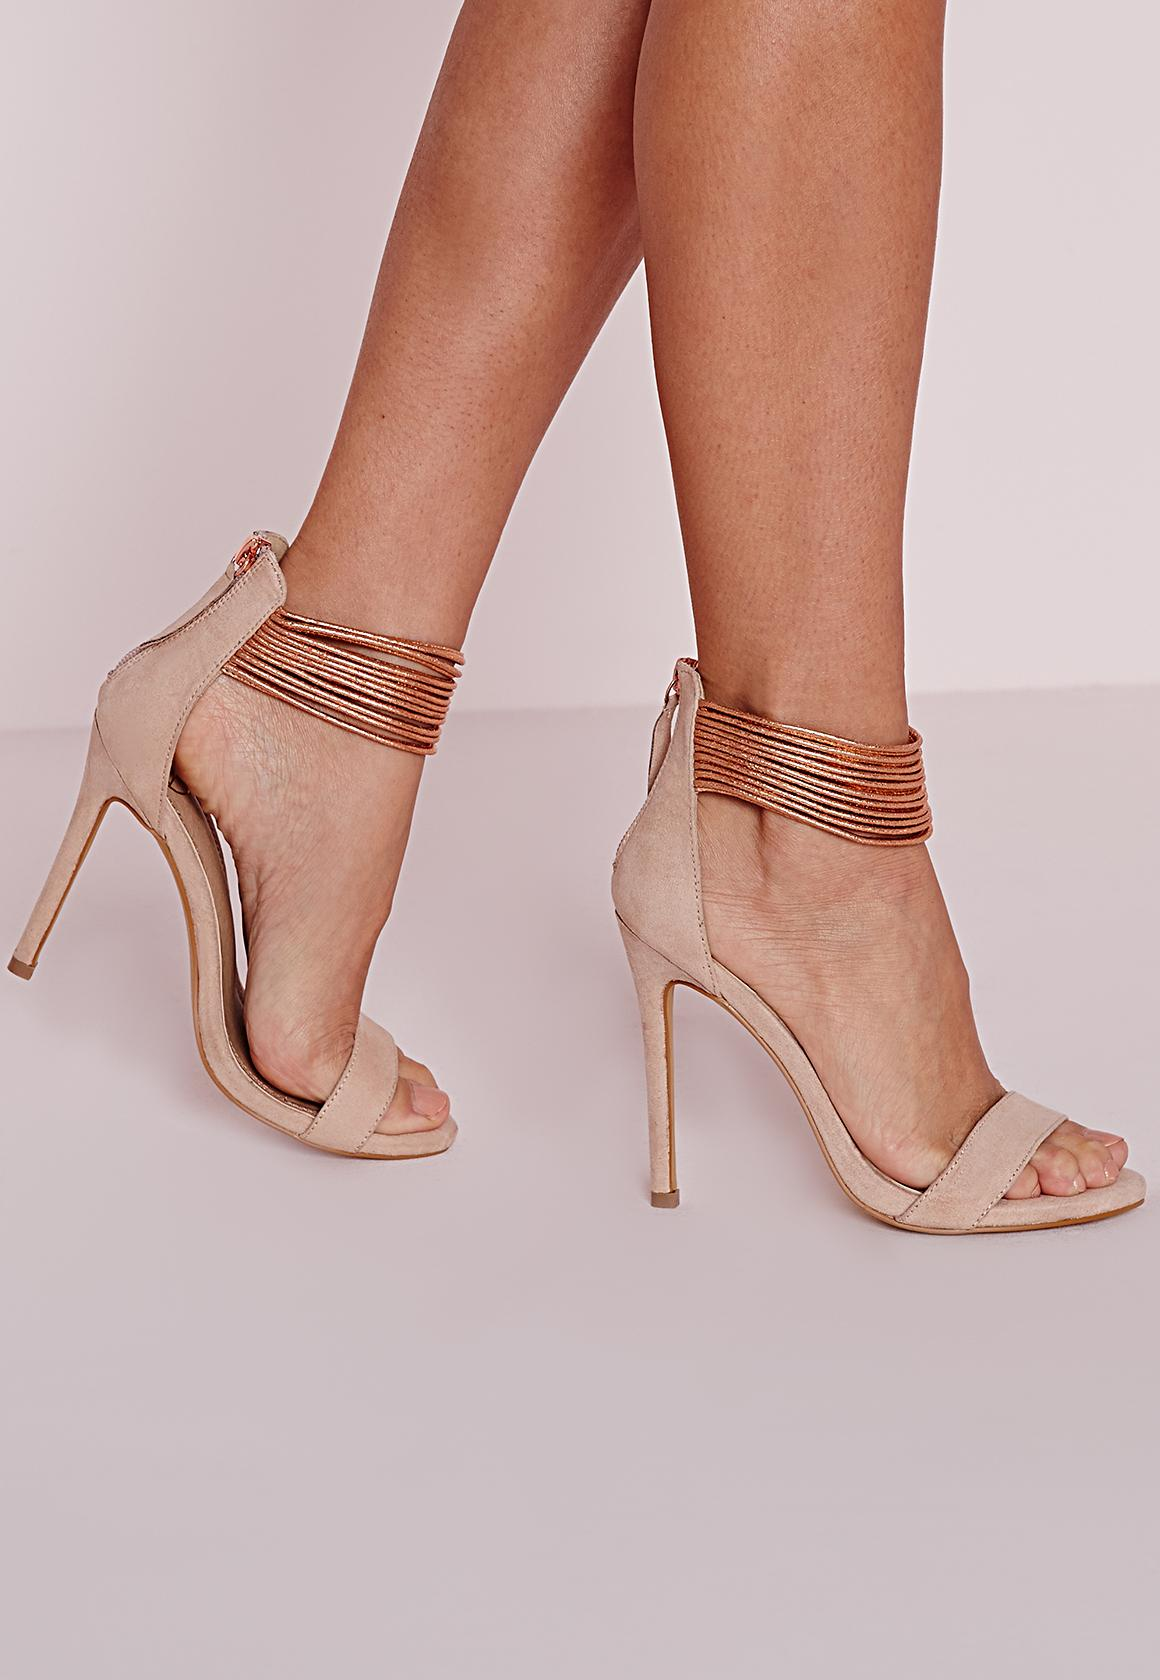 Metallic Ankle Strap Barely There Heels Rose Gold | Missguided